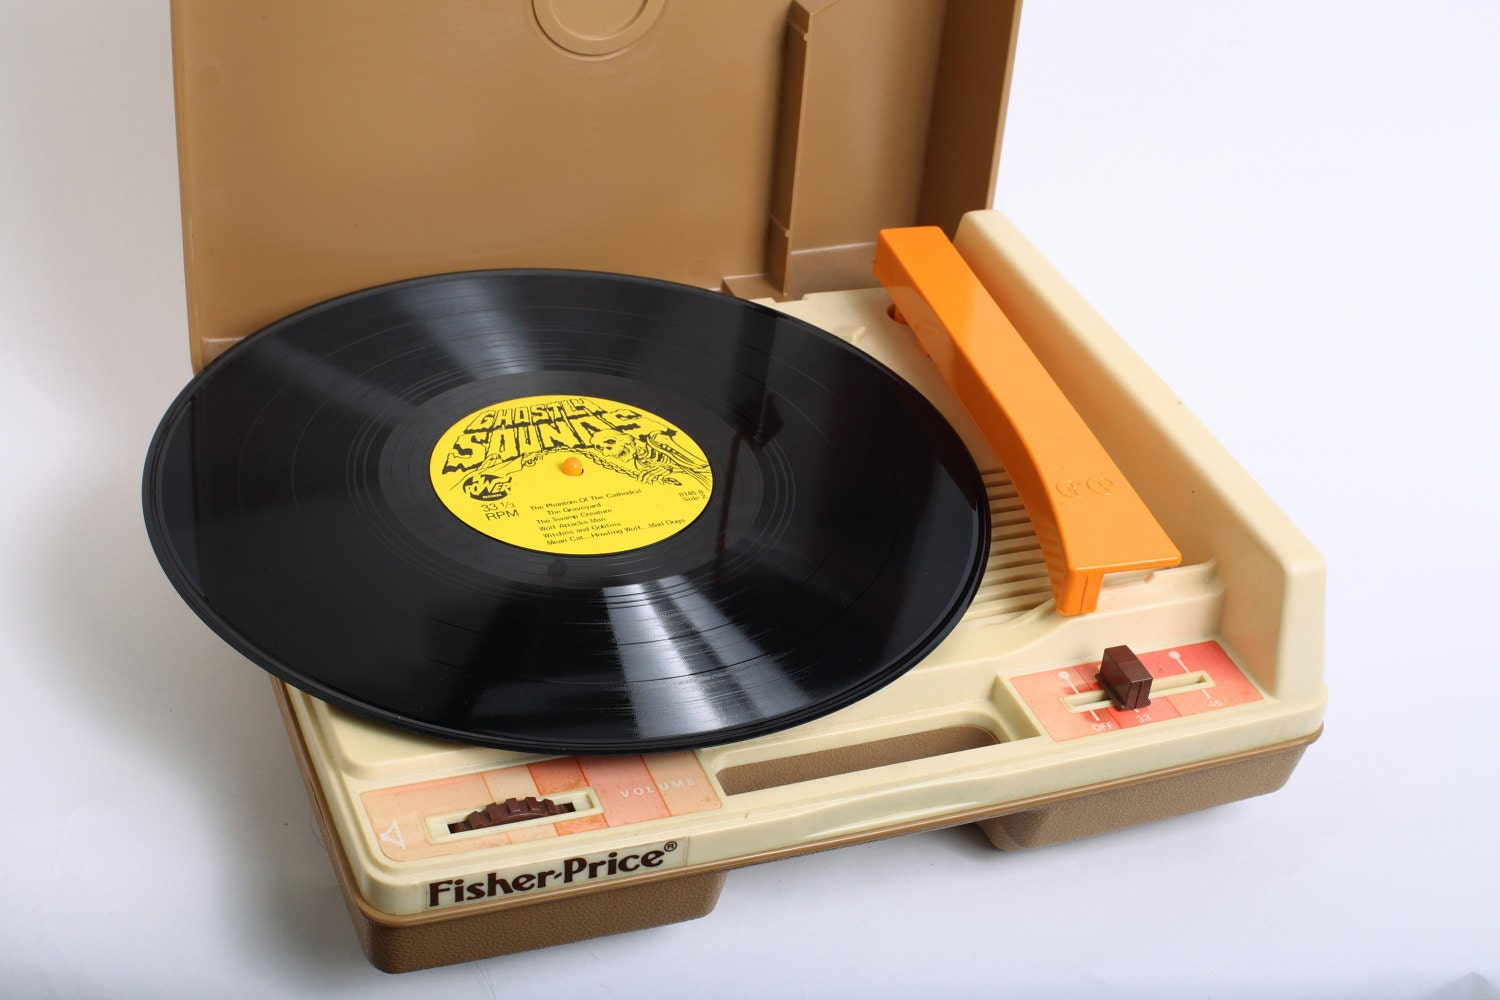 Vintage 1970s Fisher Price Record Player In Orange